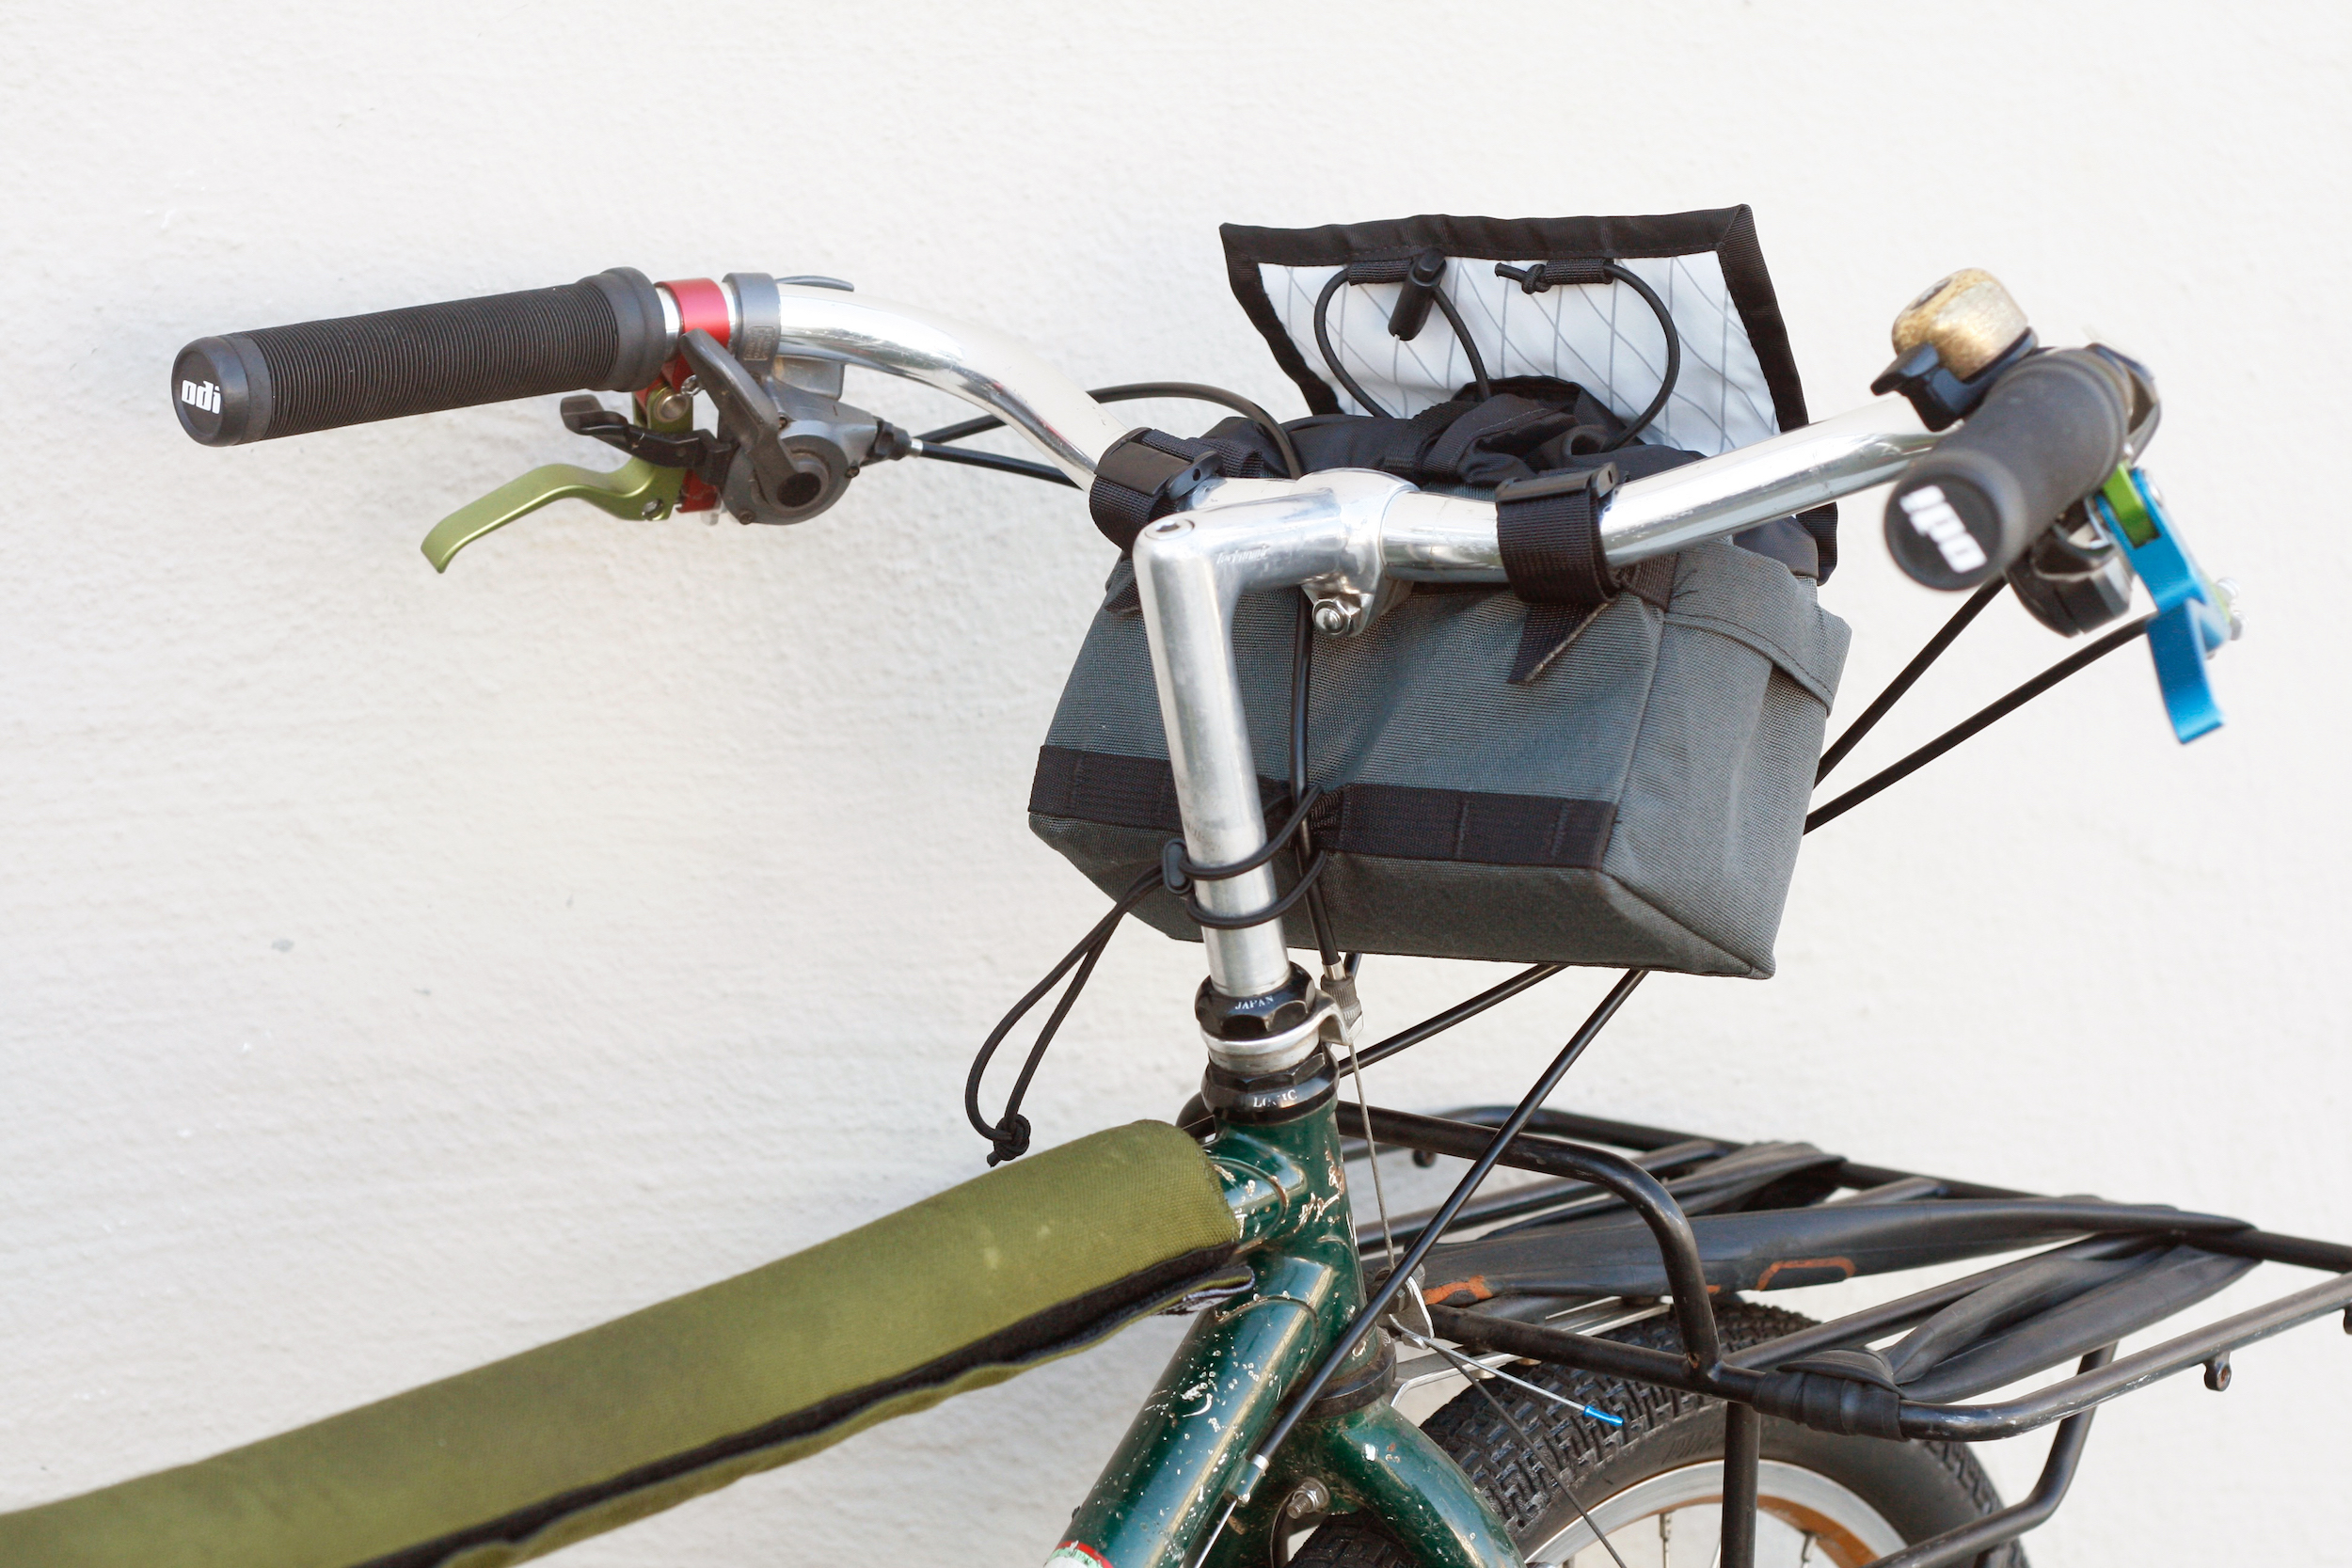 No spacers needed, bag rests gently on brake cable